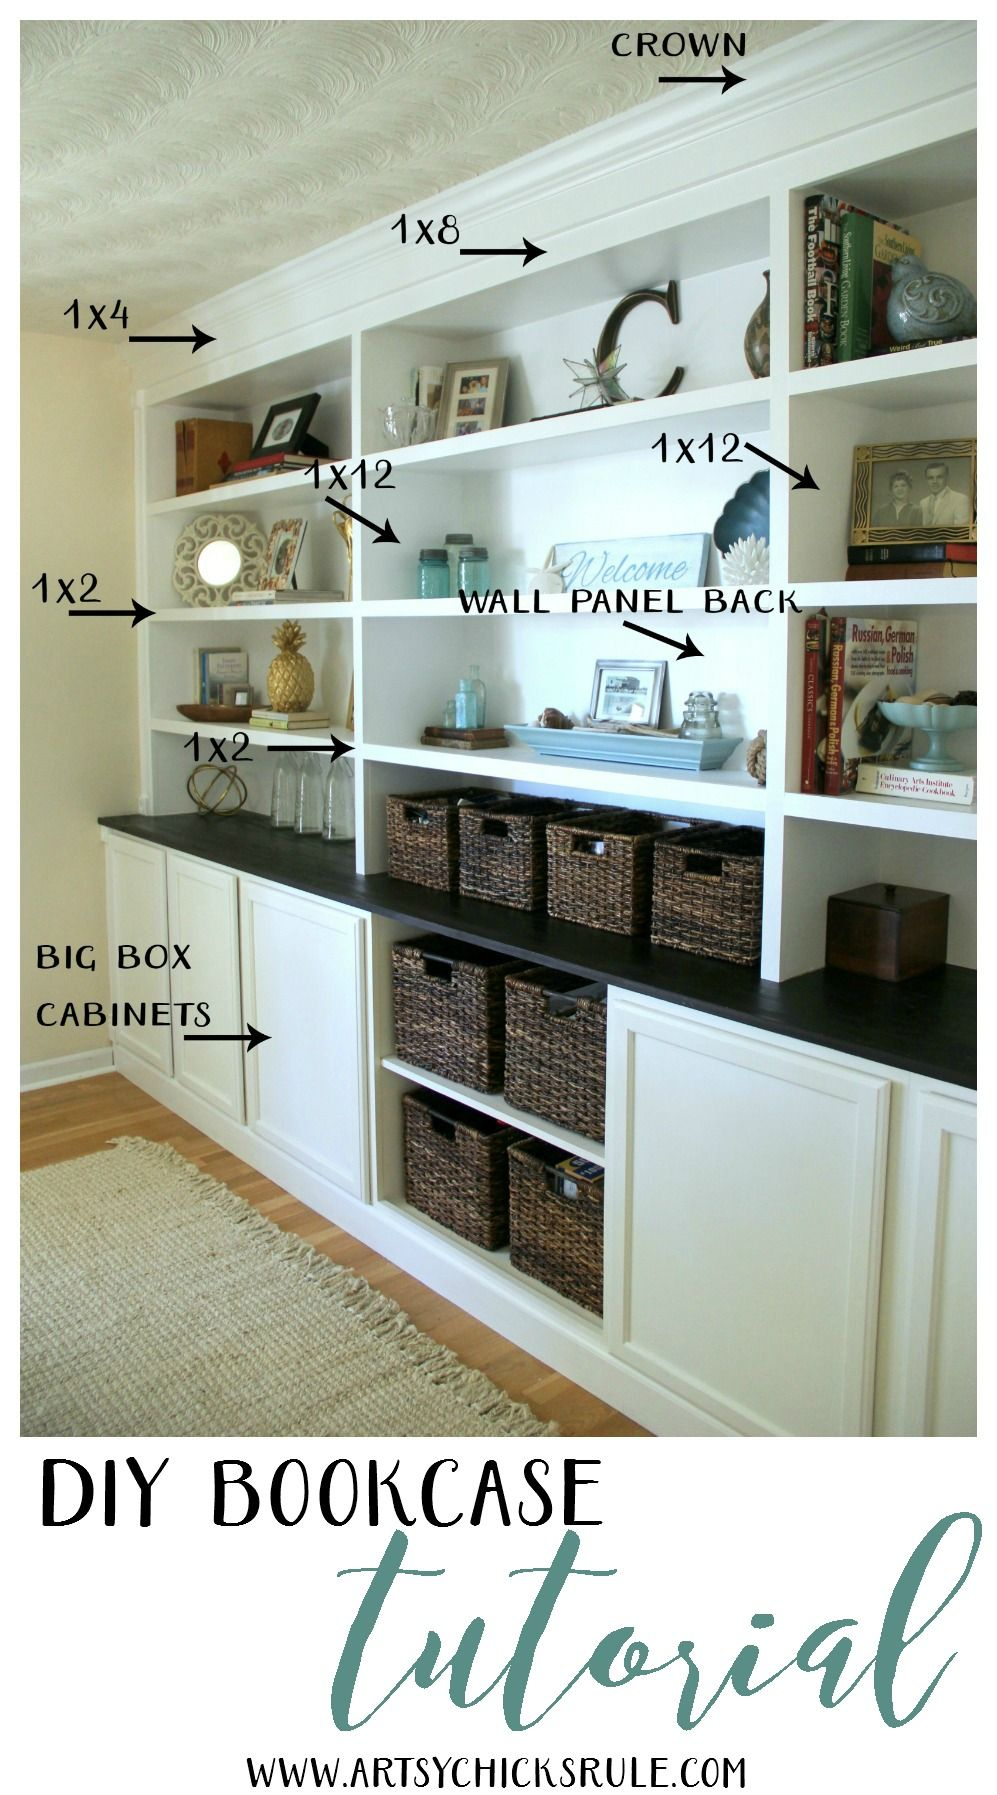 ravishing better homes and gardens bookcase. DIY Bookcase Tutorial  built in all the details Artsy Chicks Rule Diy bookcases